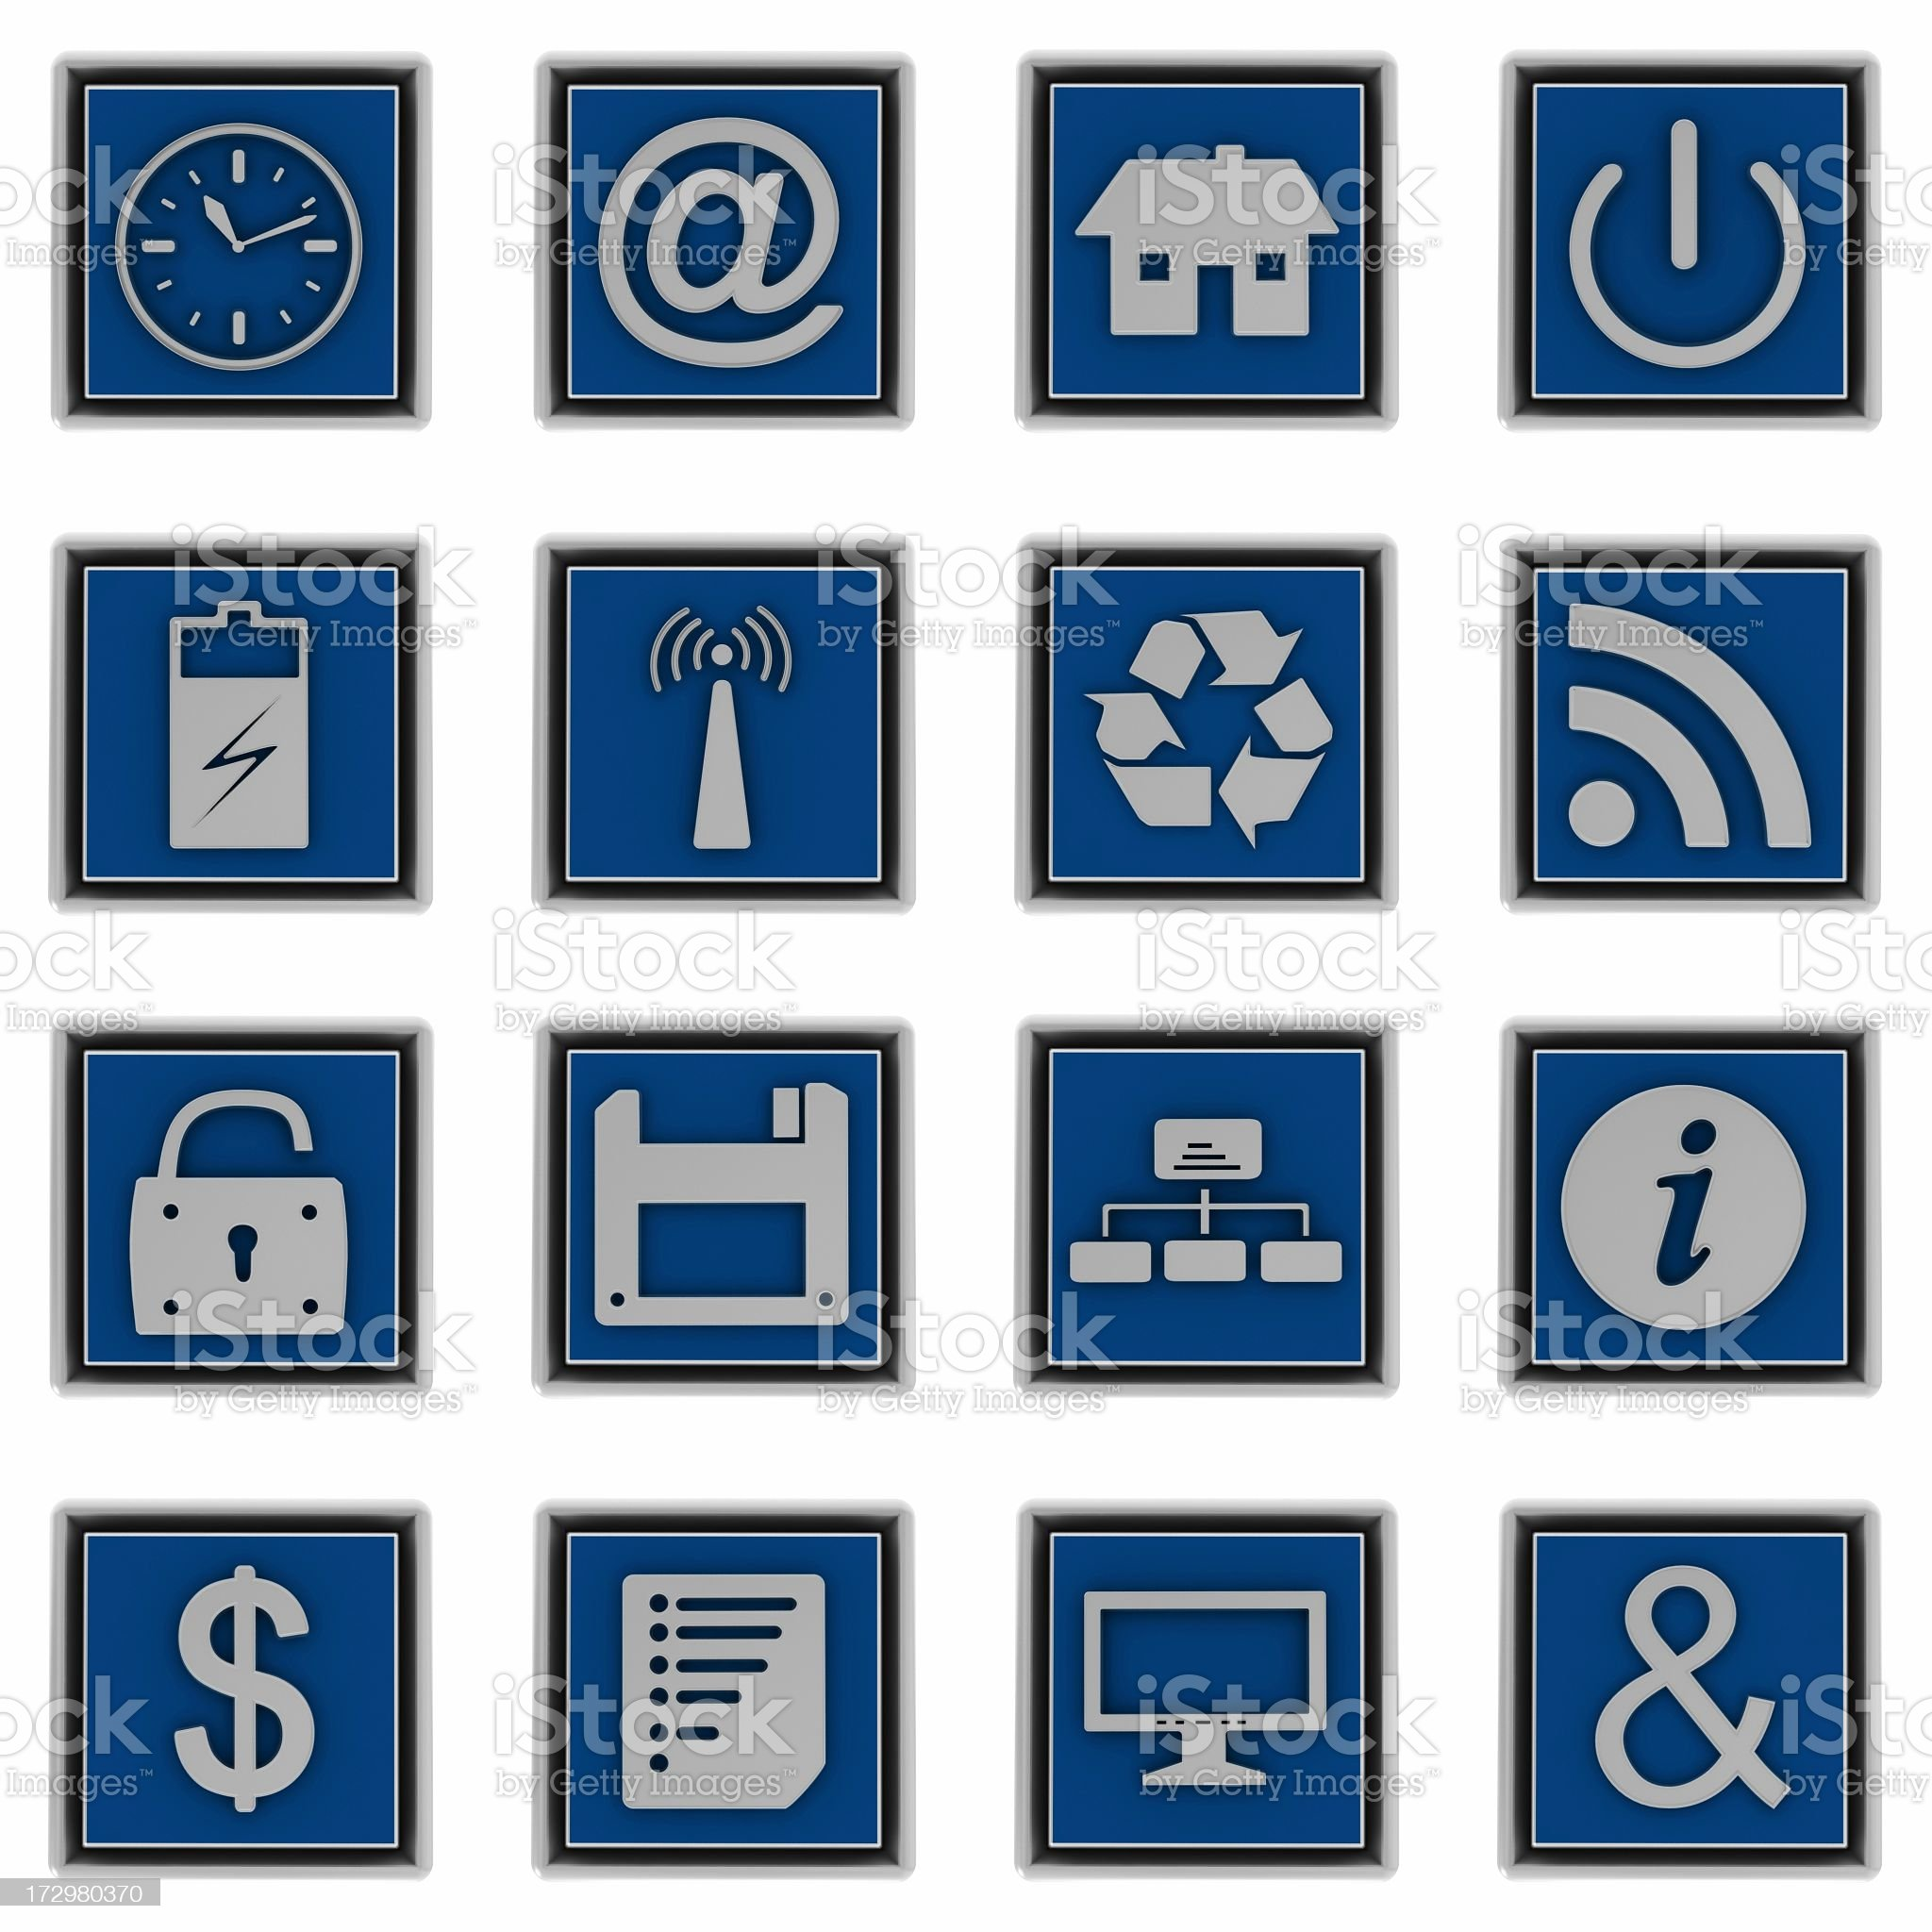 Internet icons royalty-free stock photo